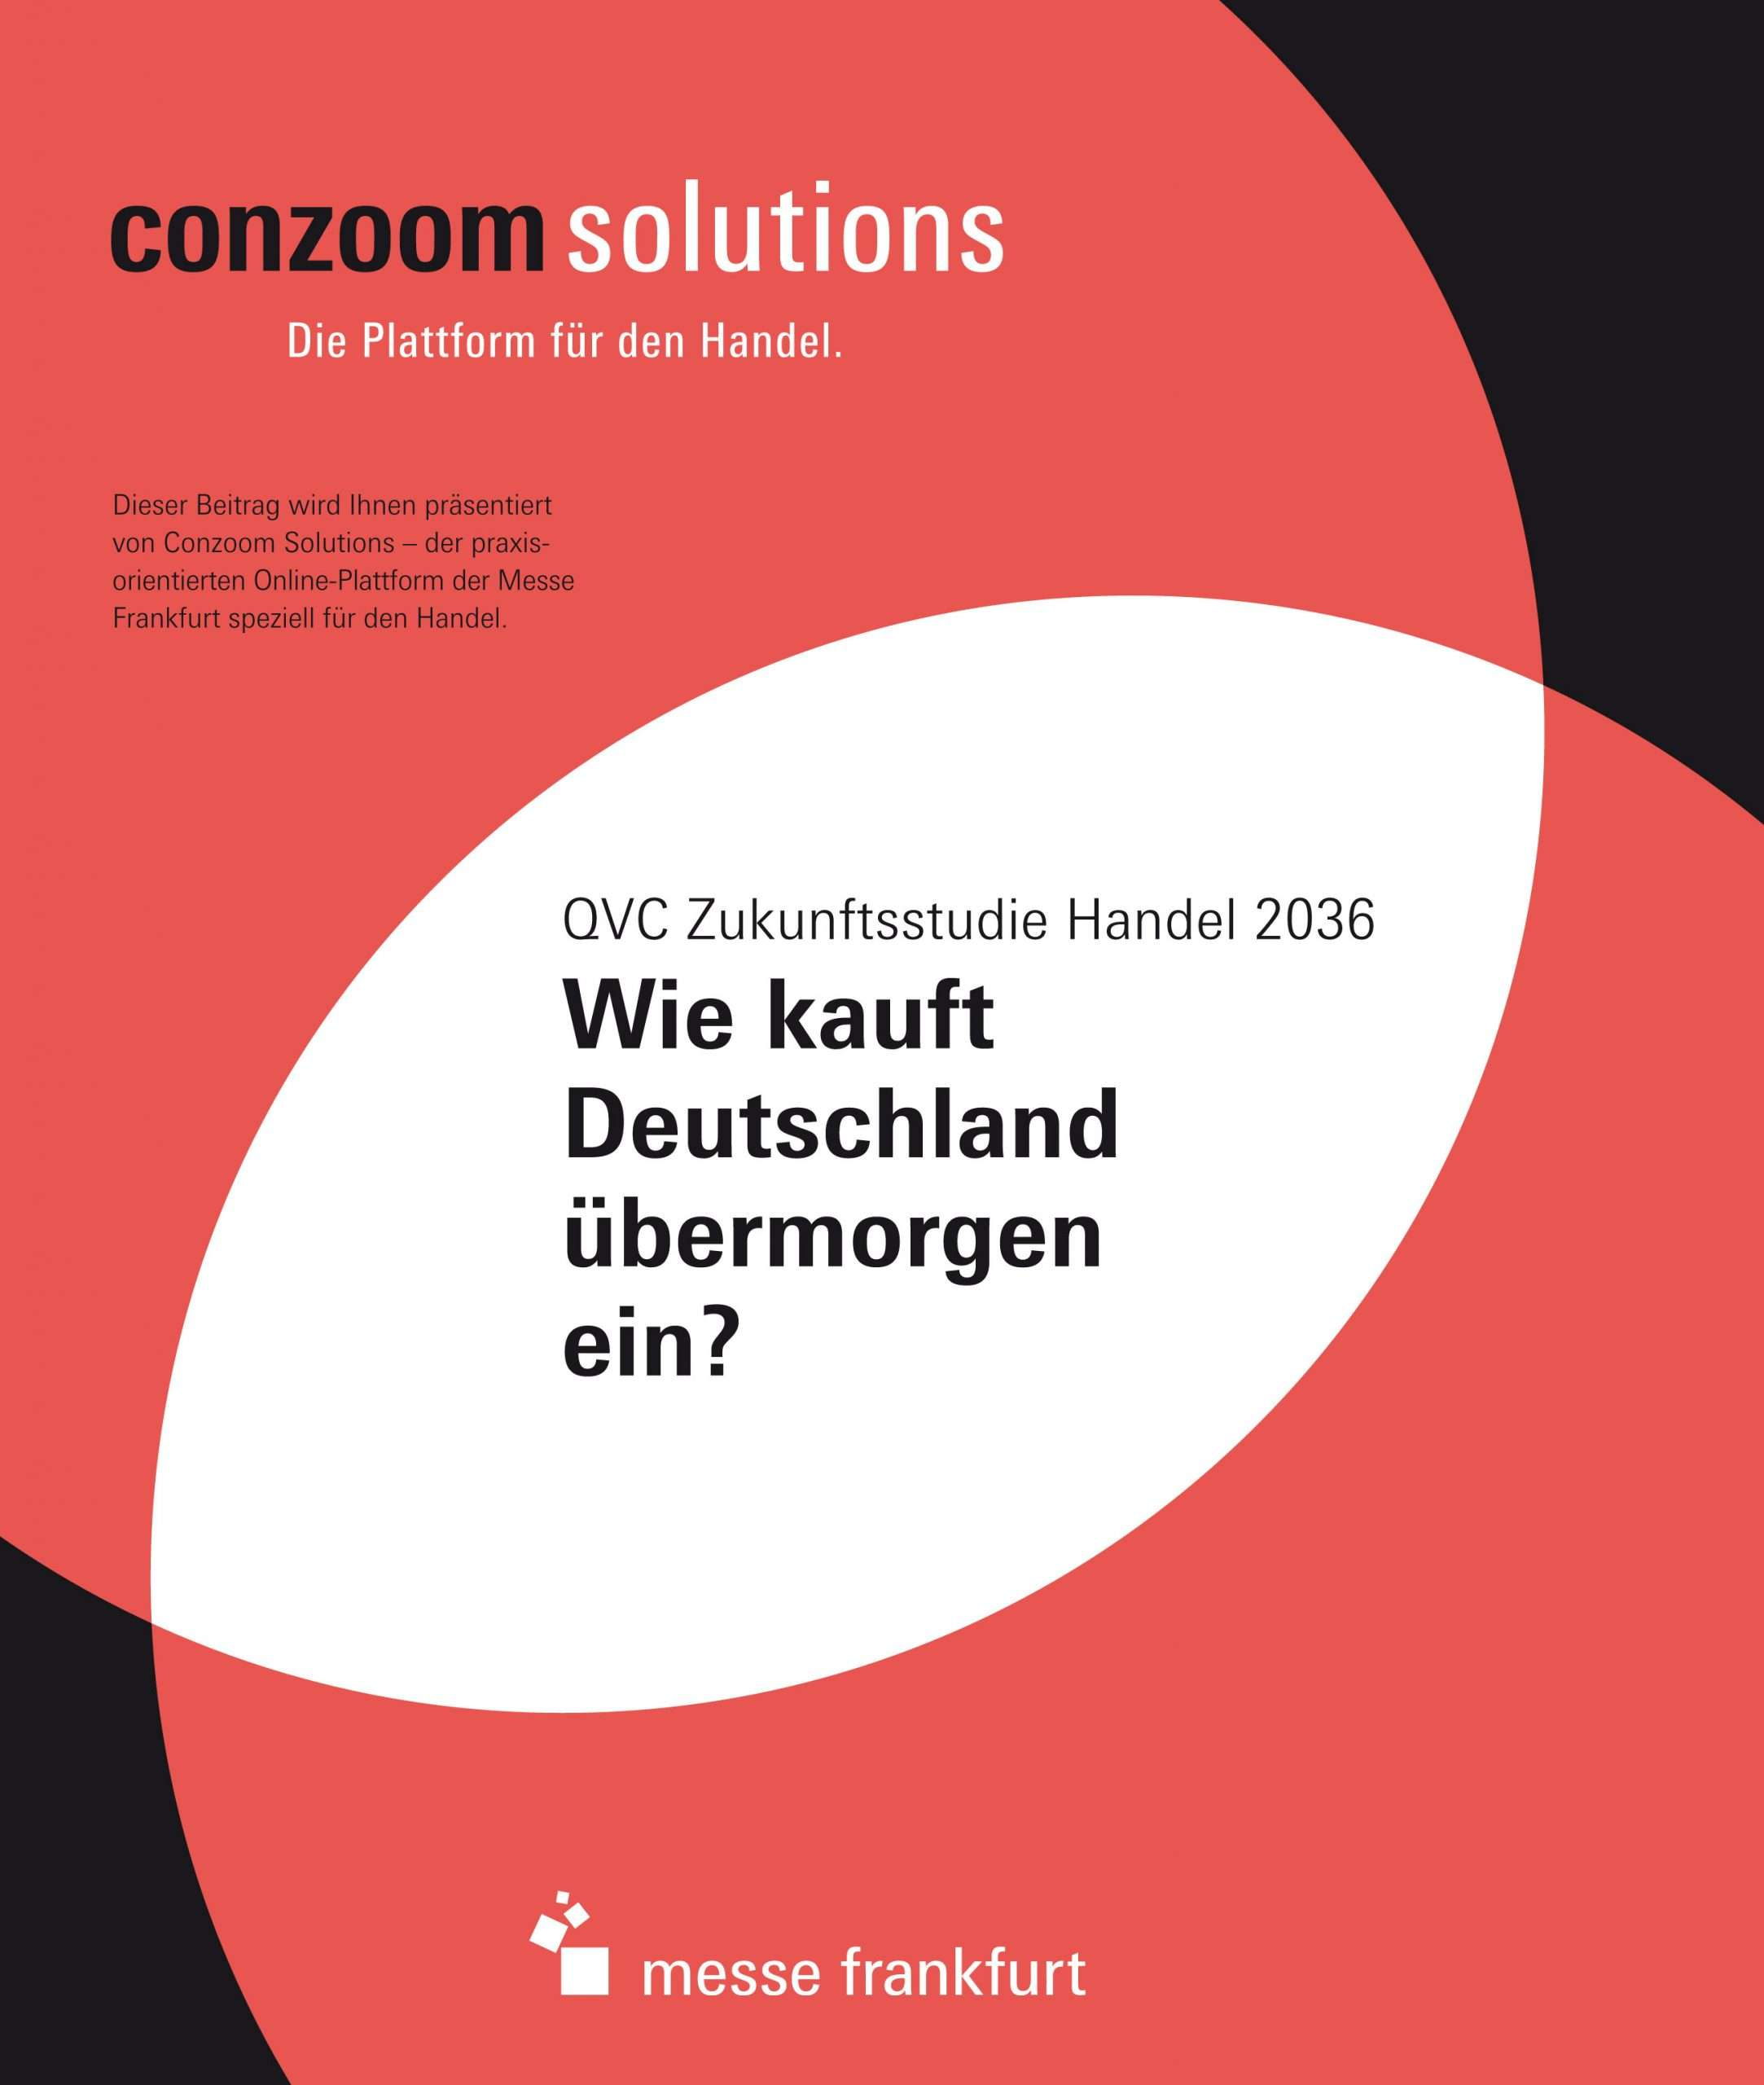 Conzoom_Solutions